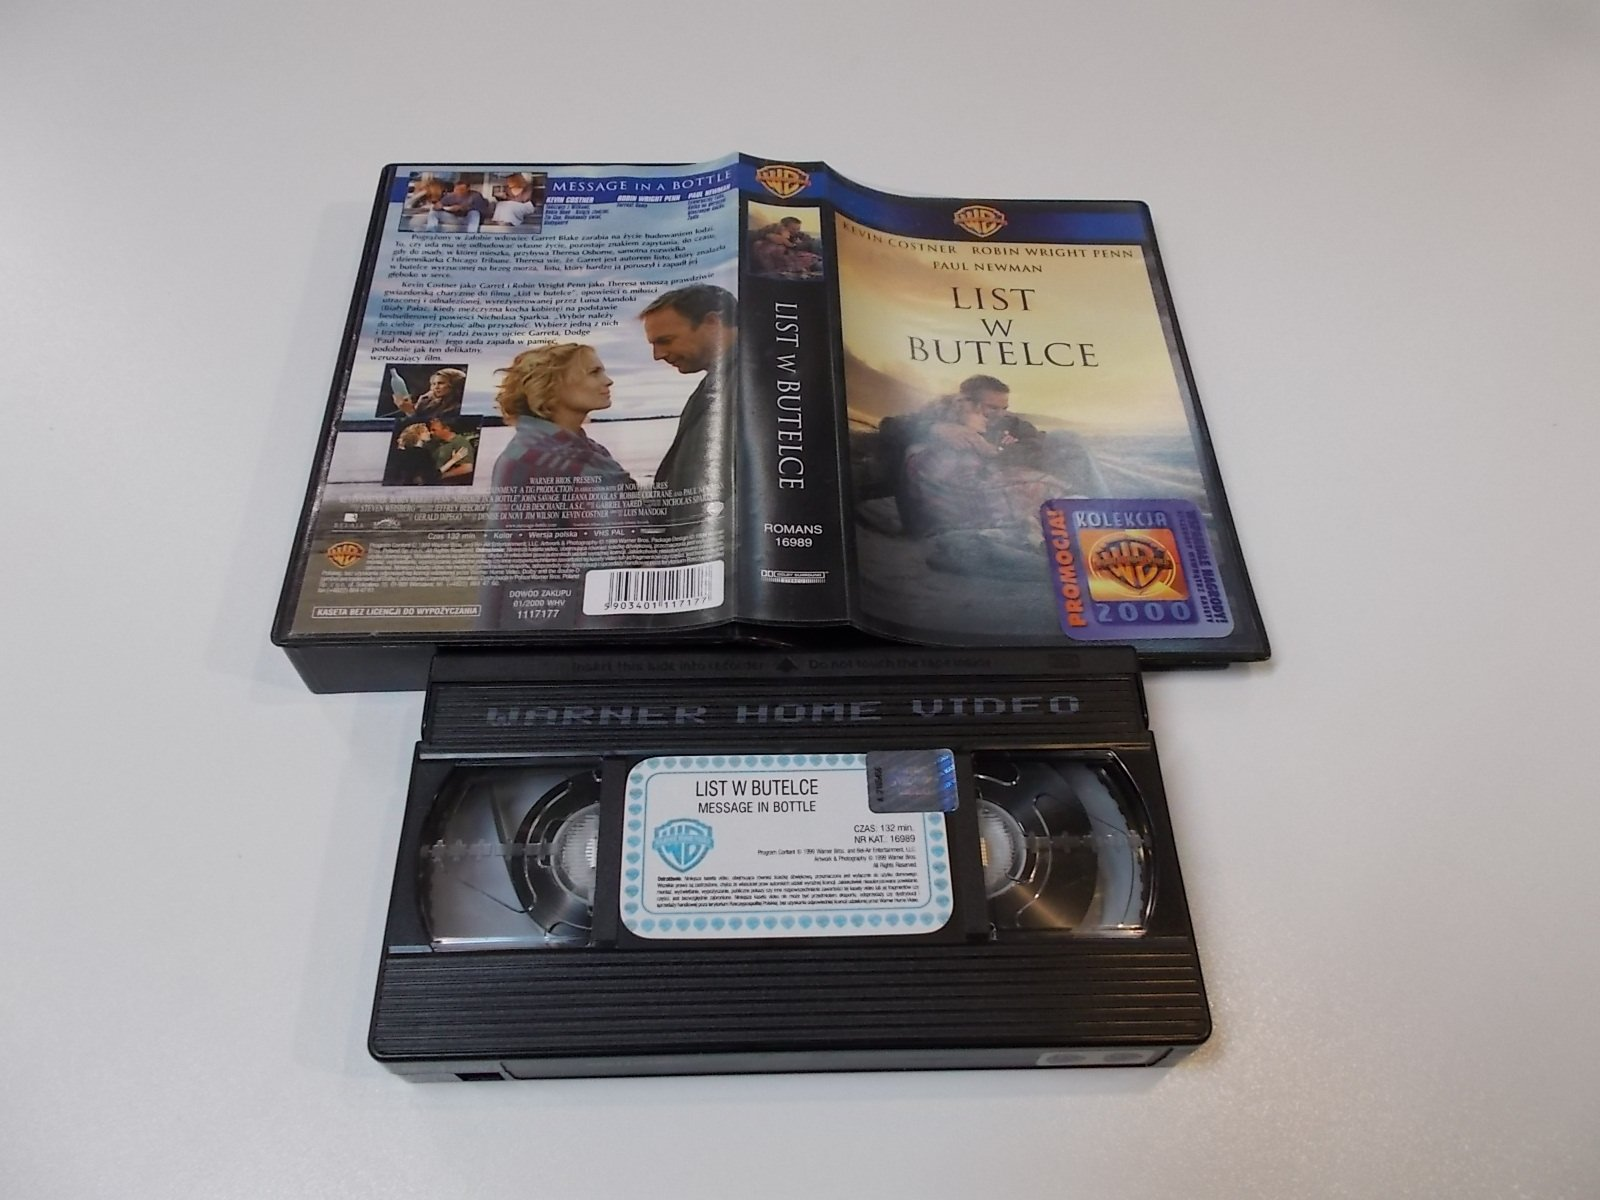 LIST W BUTELCE - VHS Kaseta Video - Opole 1685